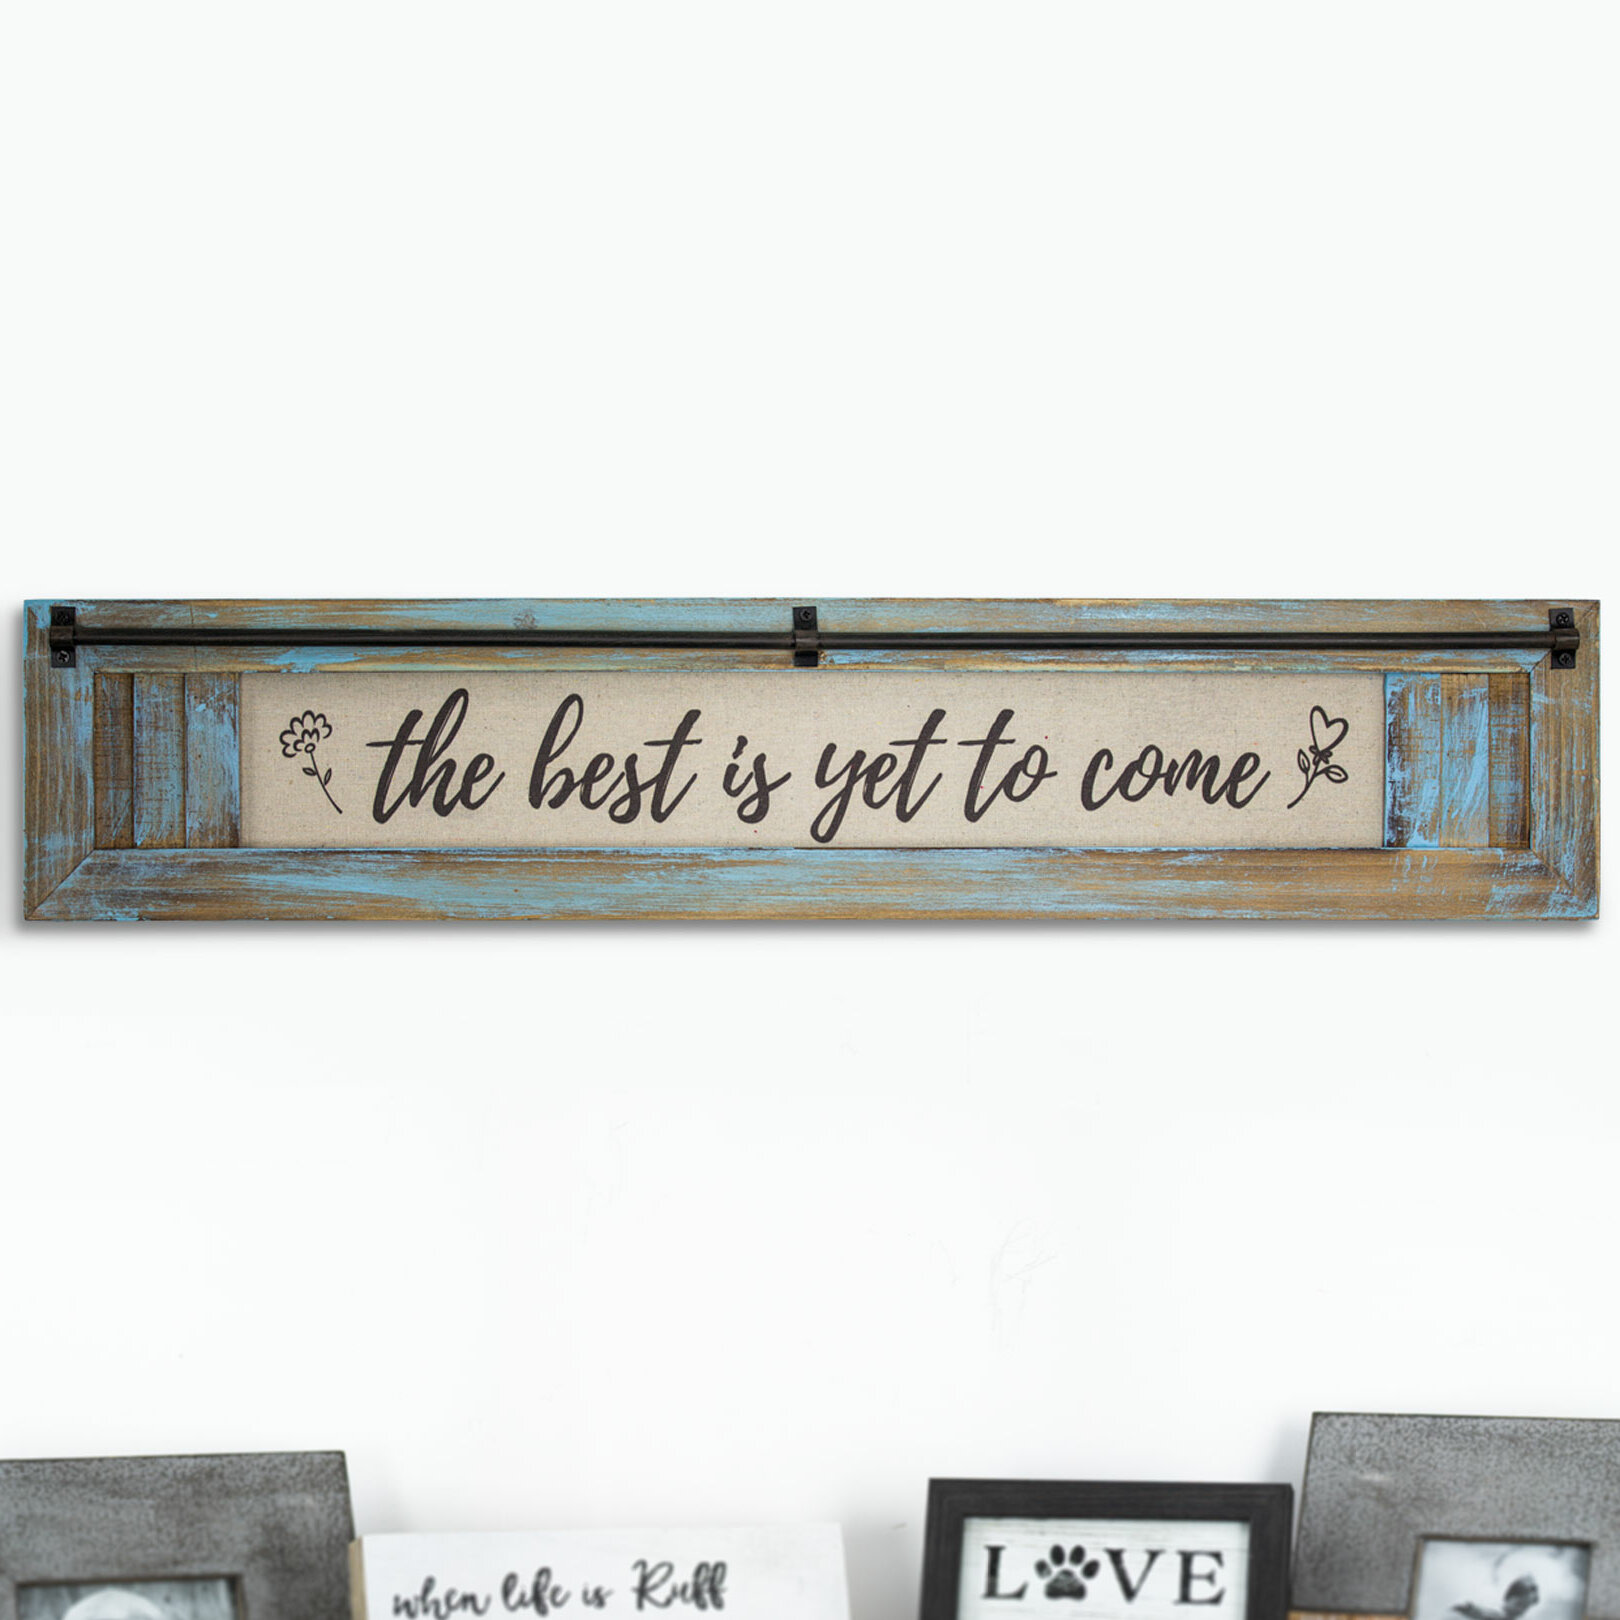 Home Sweet Home Sign 30-in W x 6-in H Inspirational Plaque Wood Look Wall Art